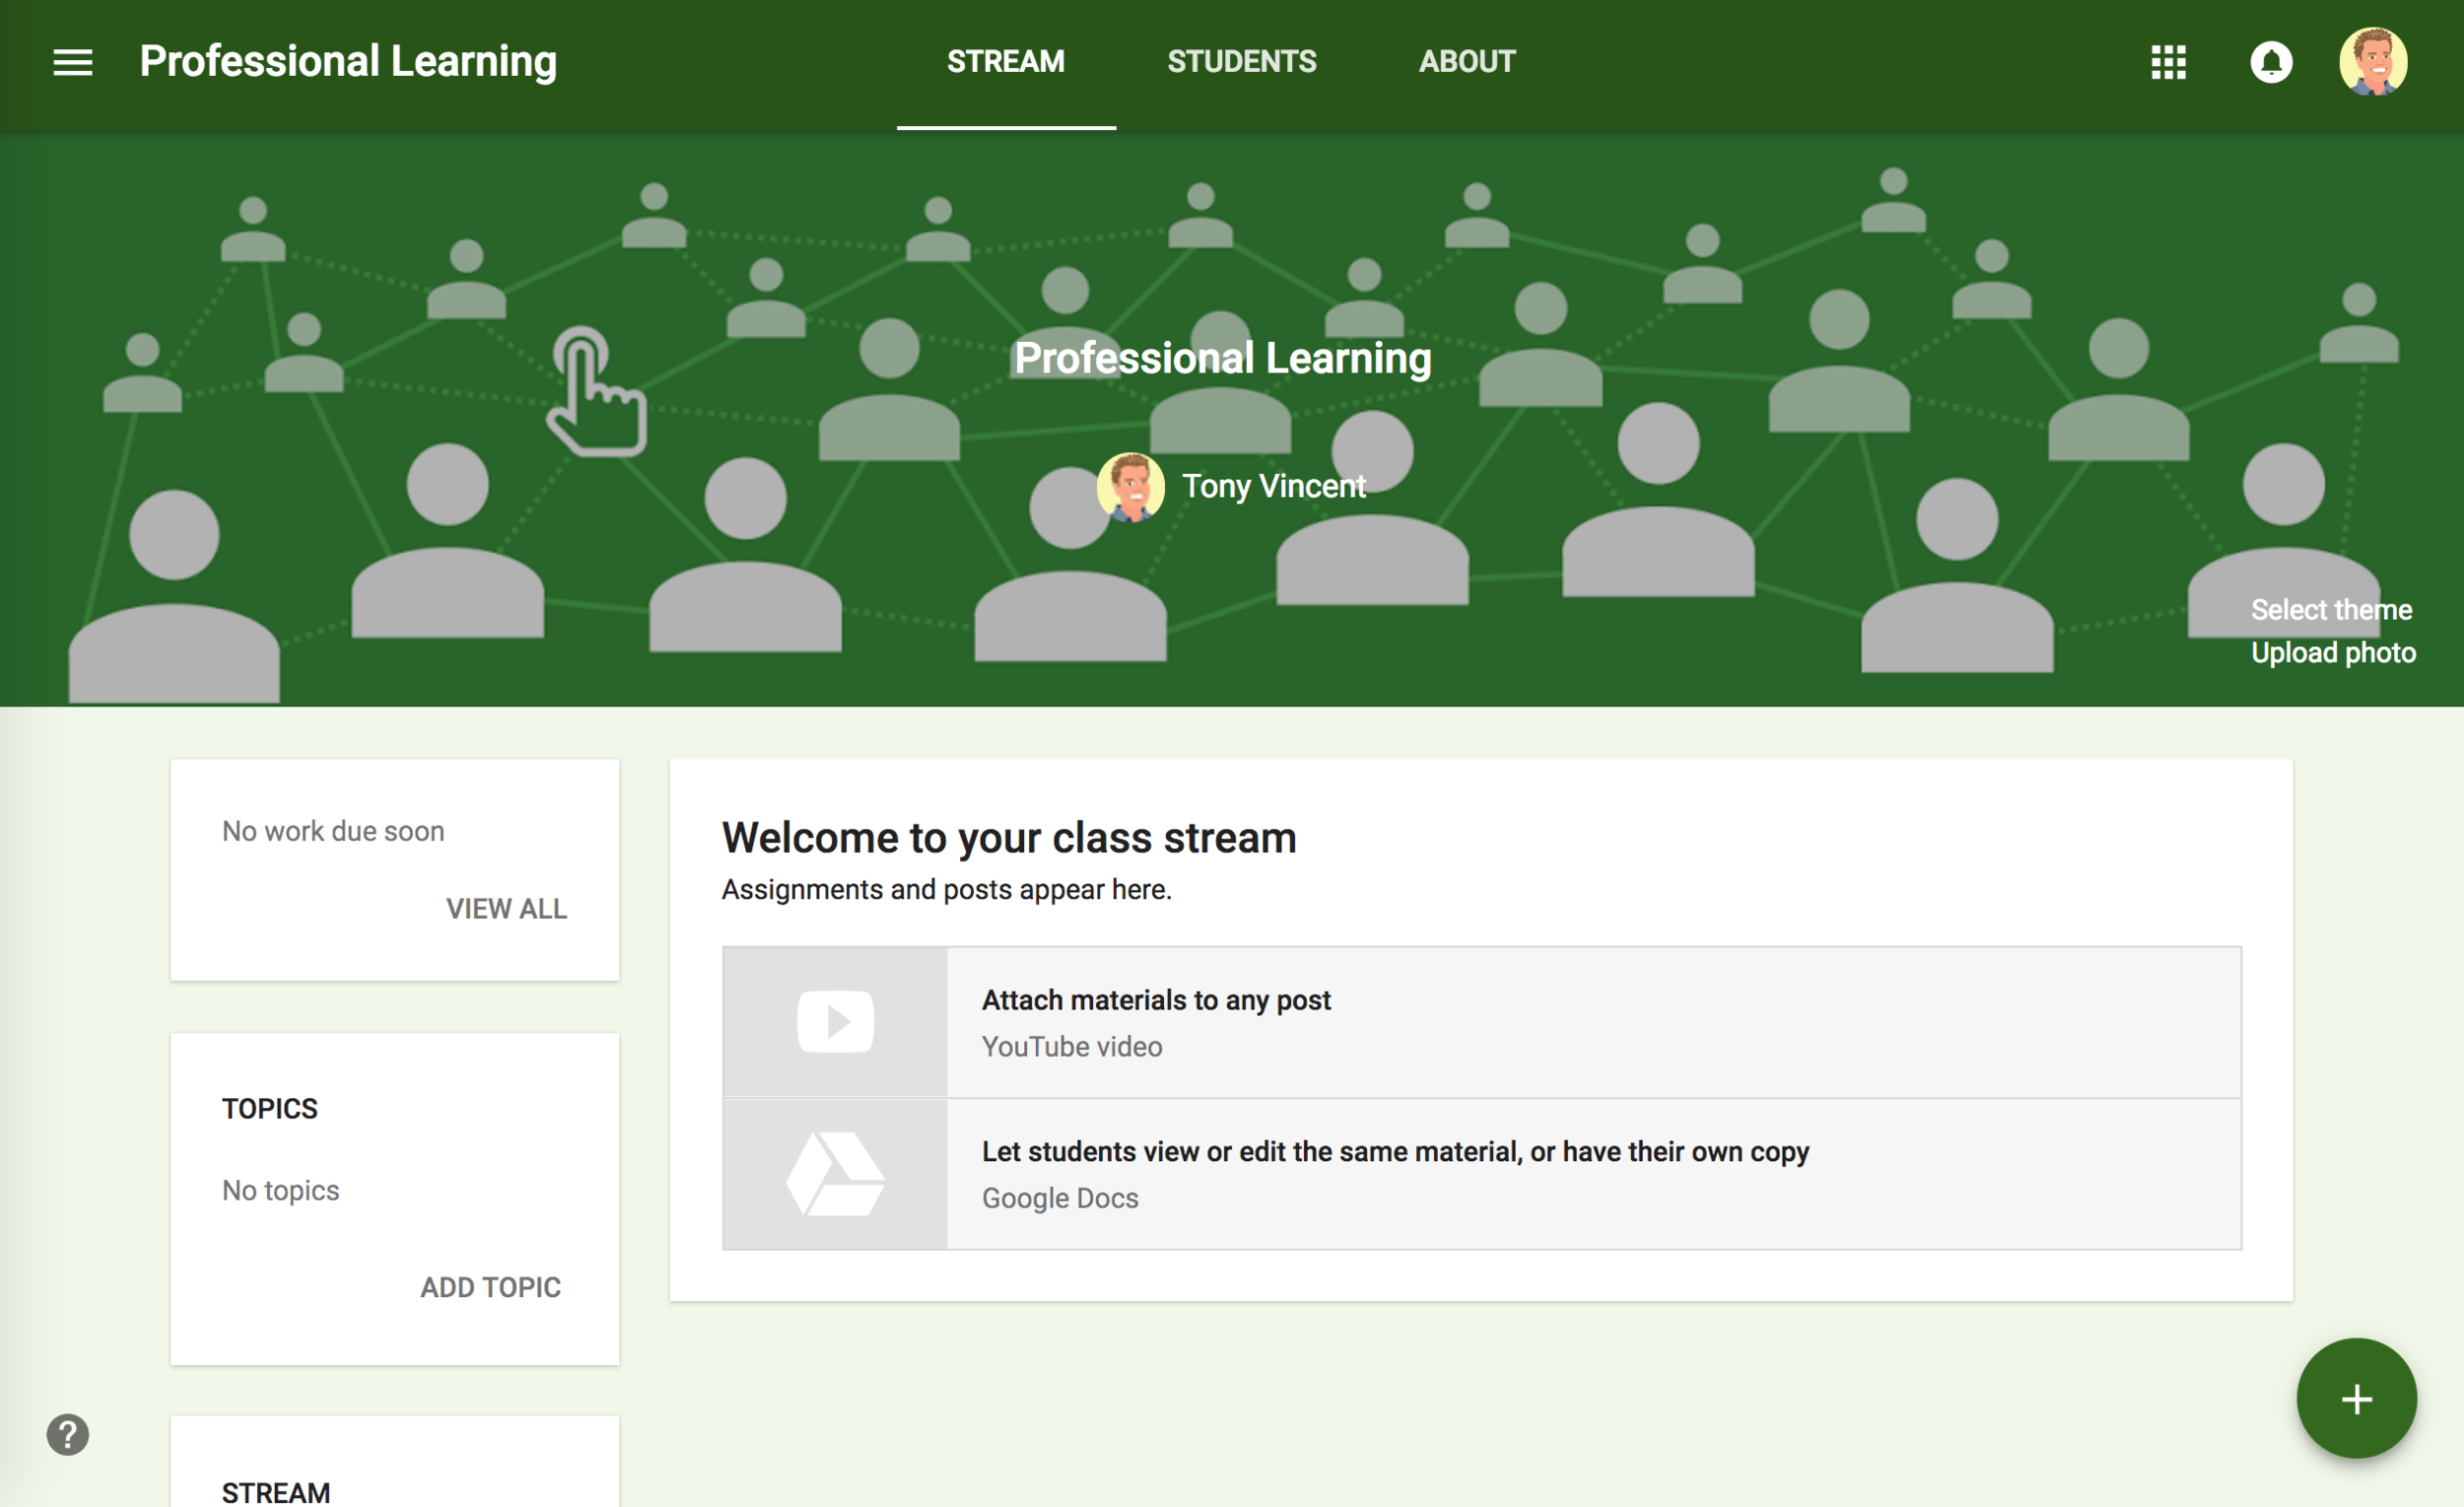 Google Classroom with uploaded Photo